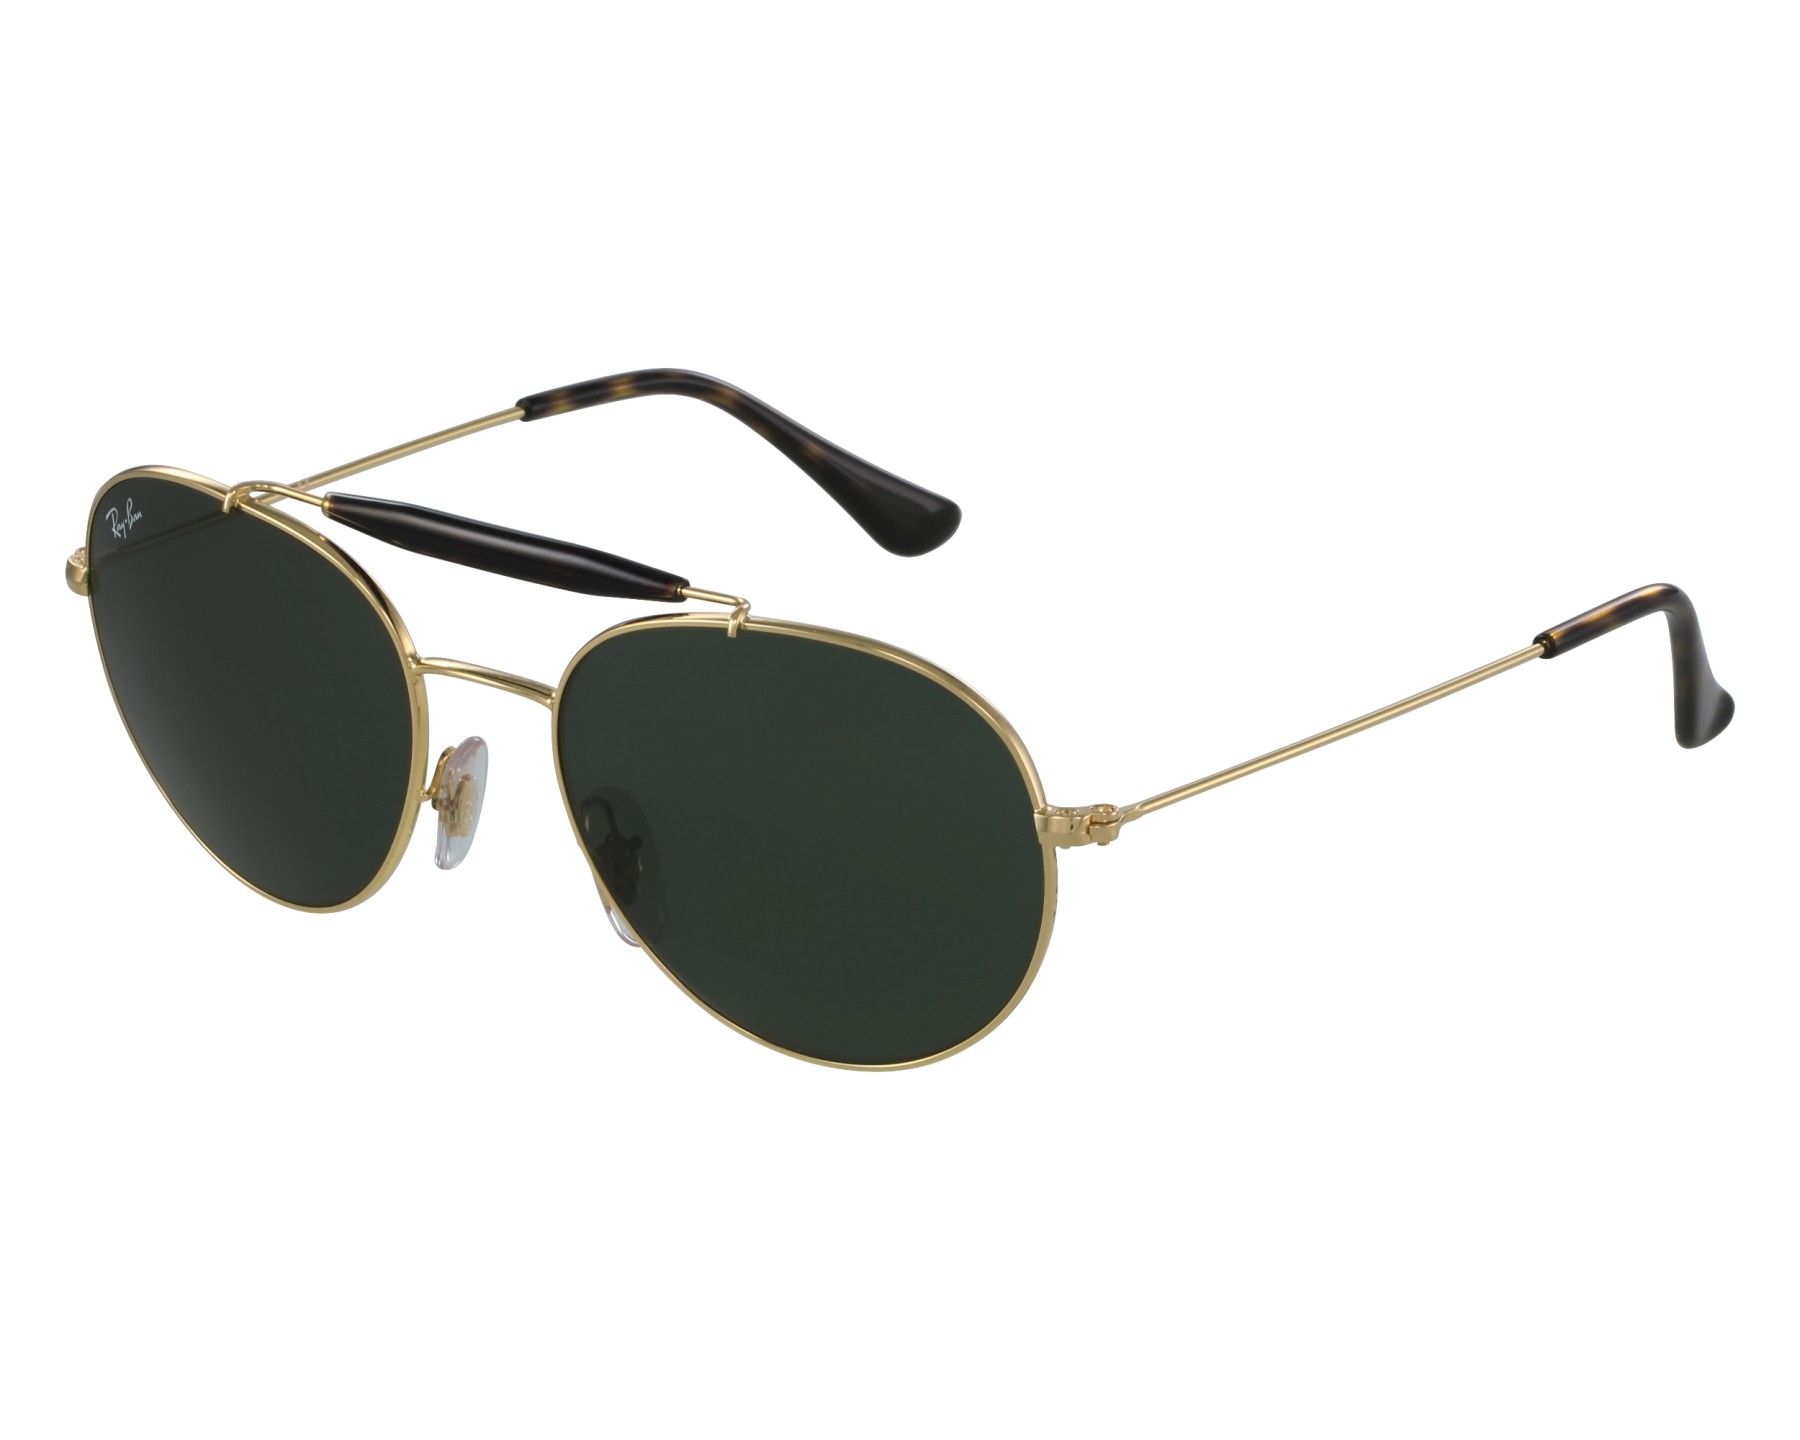 6b5c202203 Sunglasses Ray-Ban RB-3540 001 53-18 Gold Havana front view